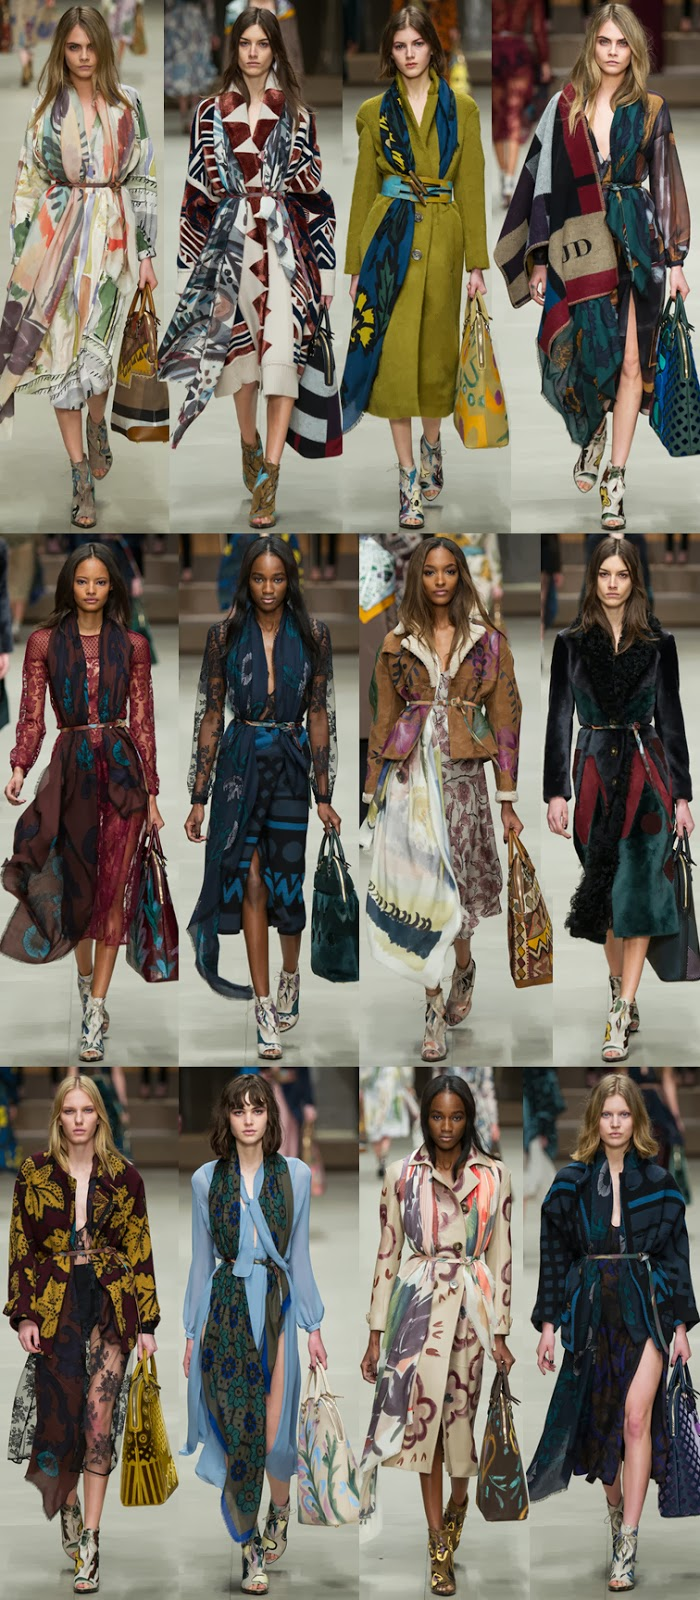 Burberry Prorsum fall winter 2014 runway collection, FW14, AW14, Christopher Bailey, Cara Delevigne